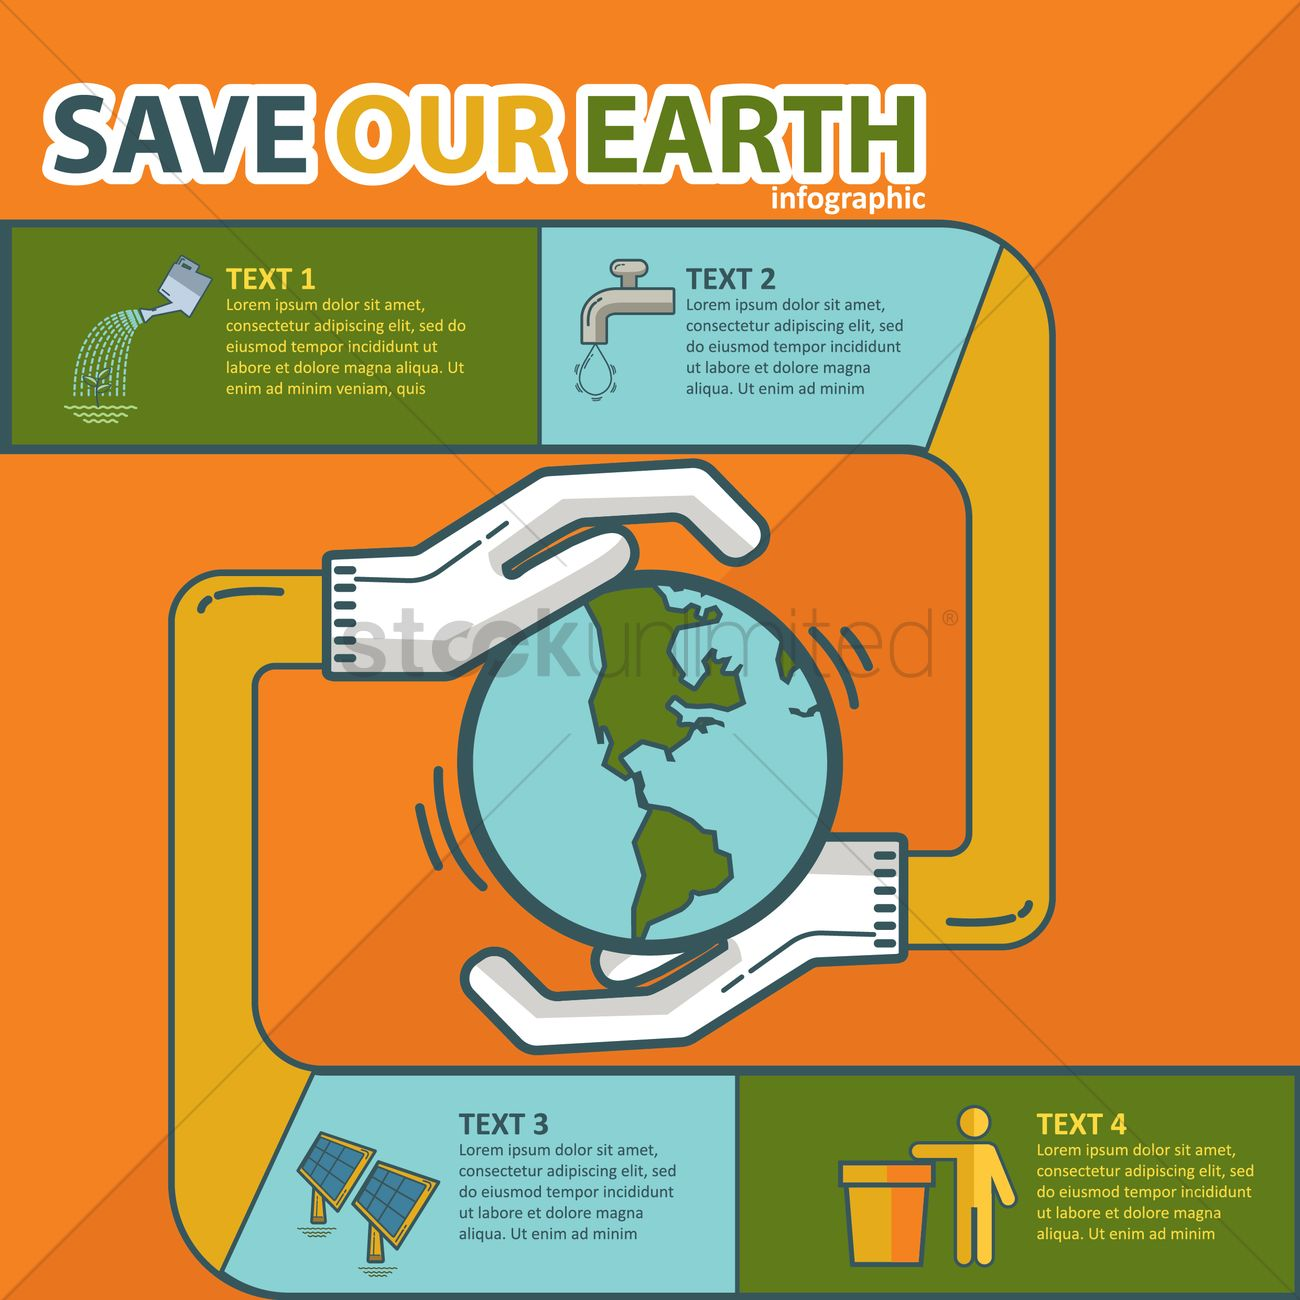 Save Earth Infographic Vector Image